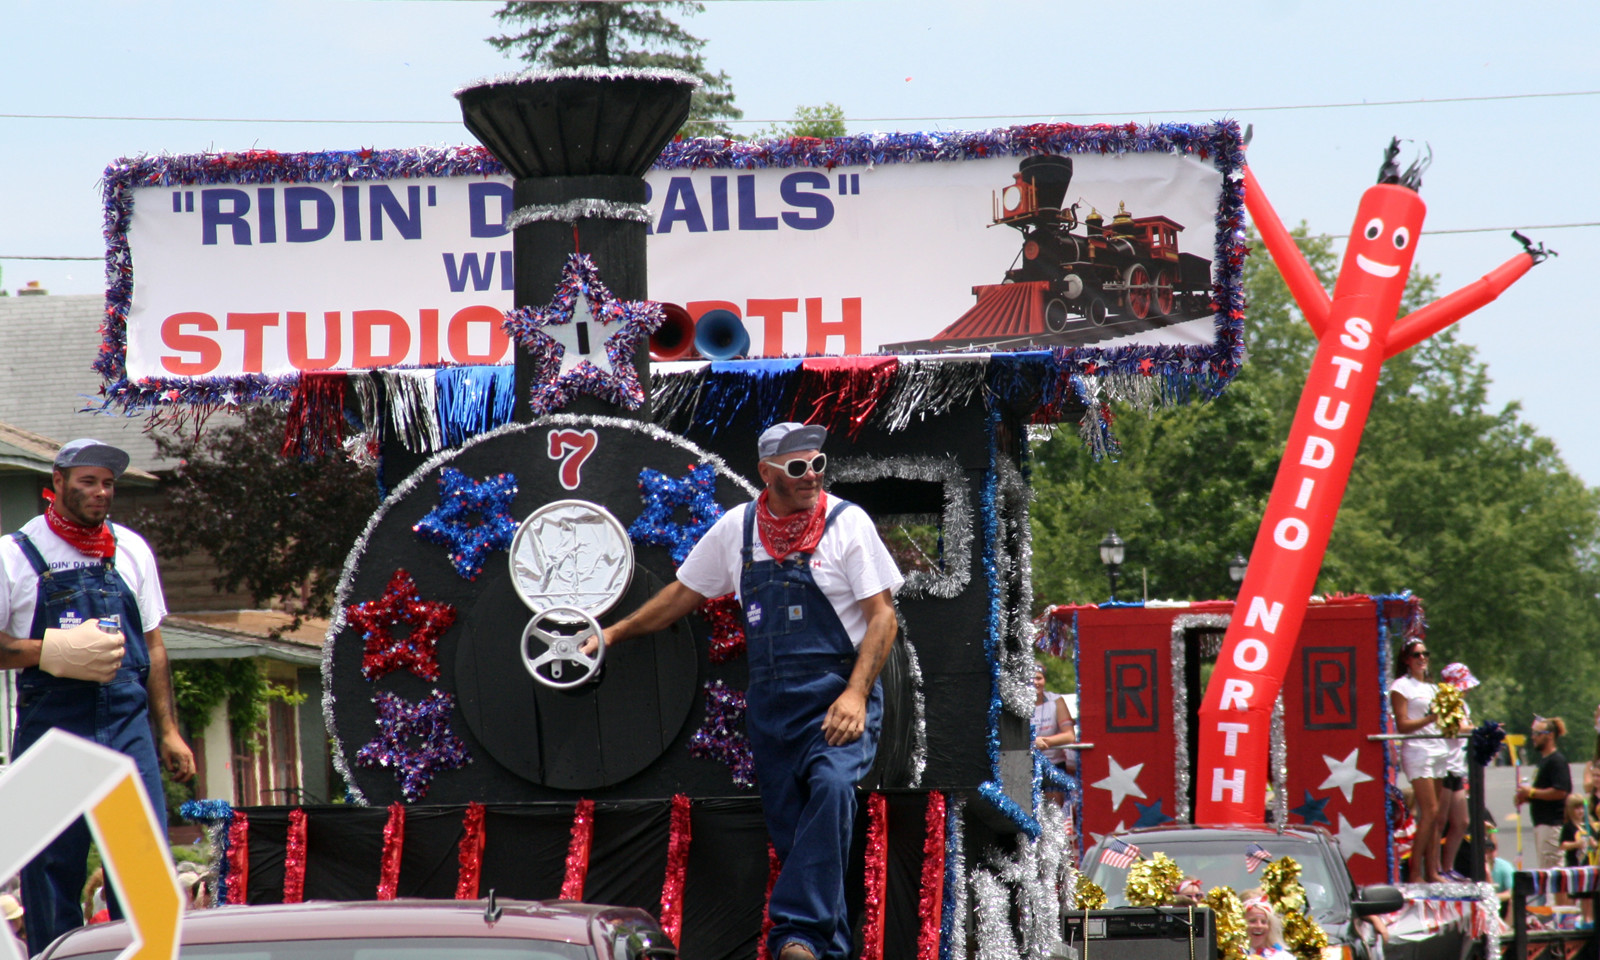 Studio North's float in the Ely parade